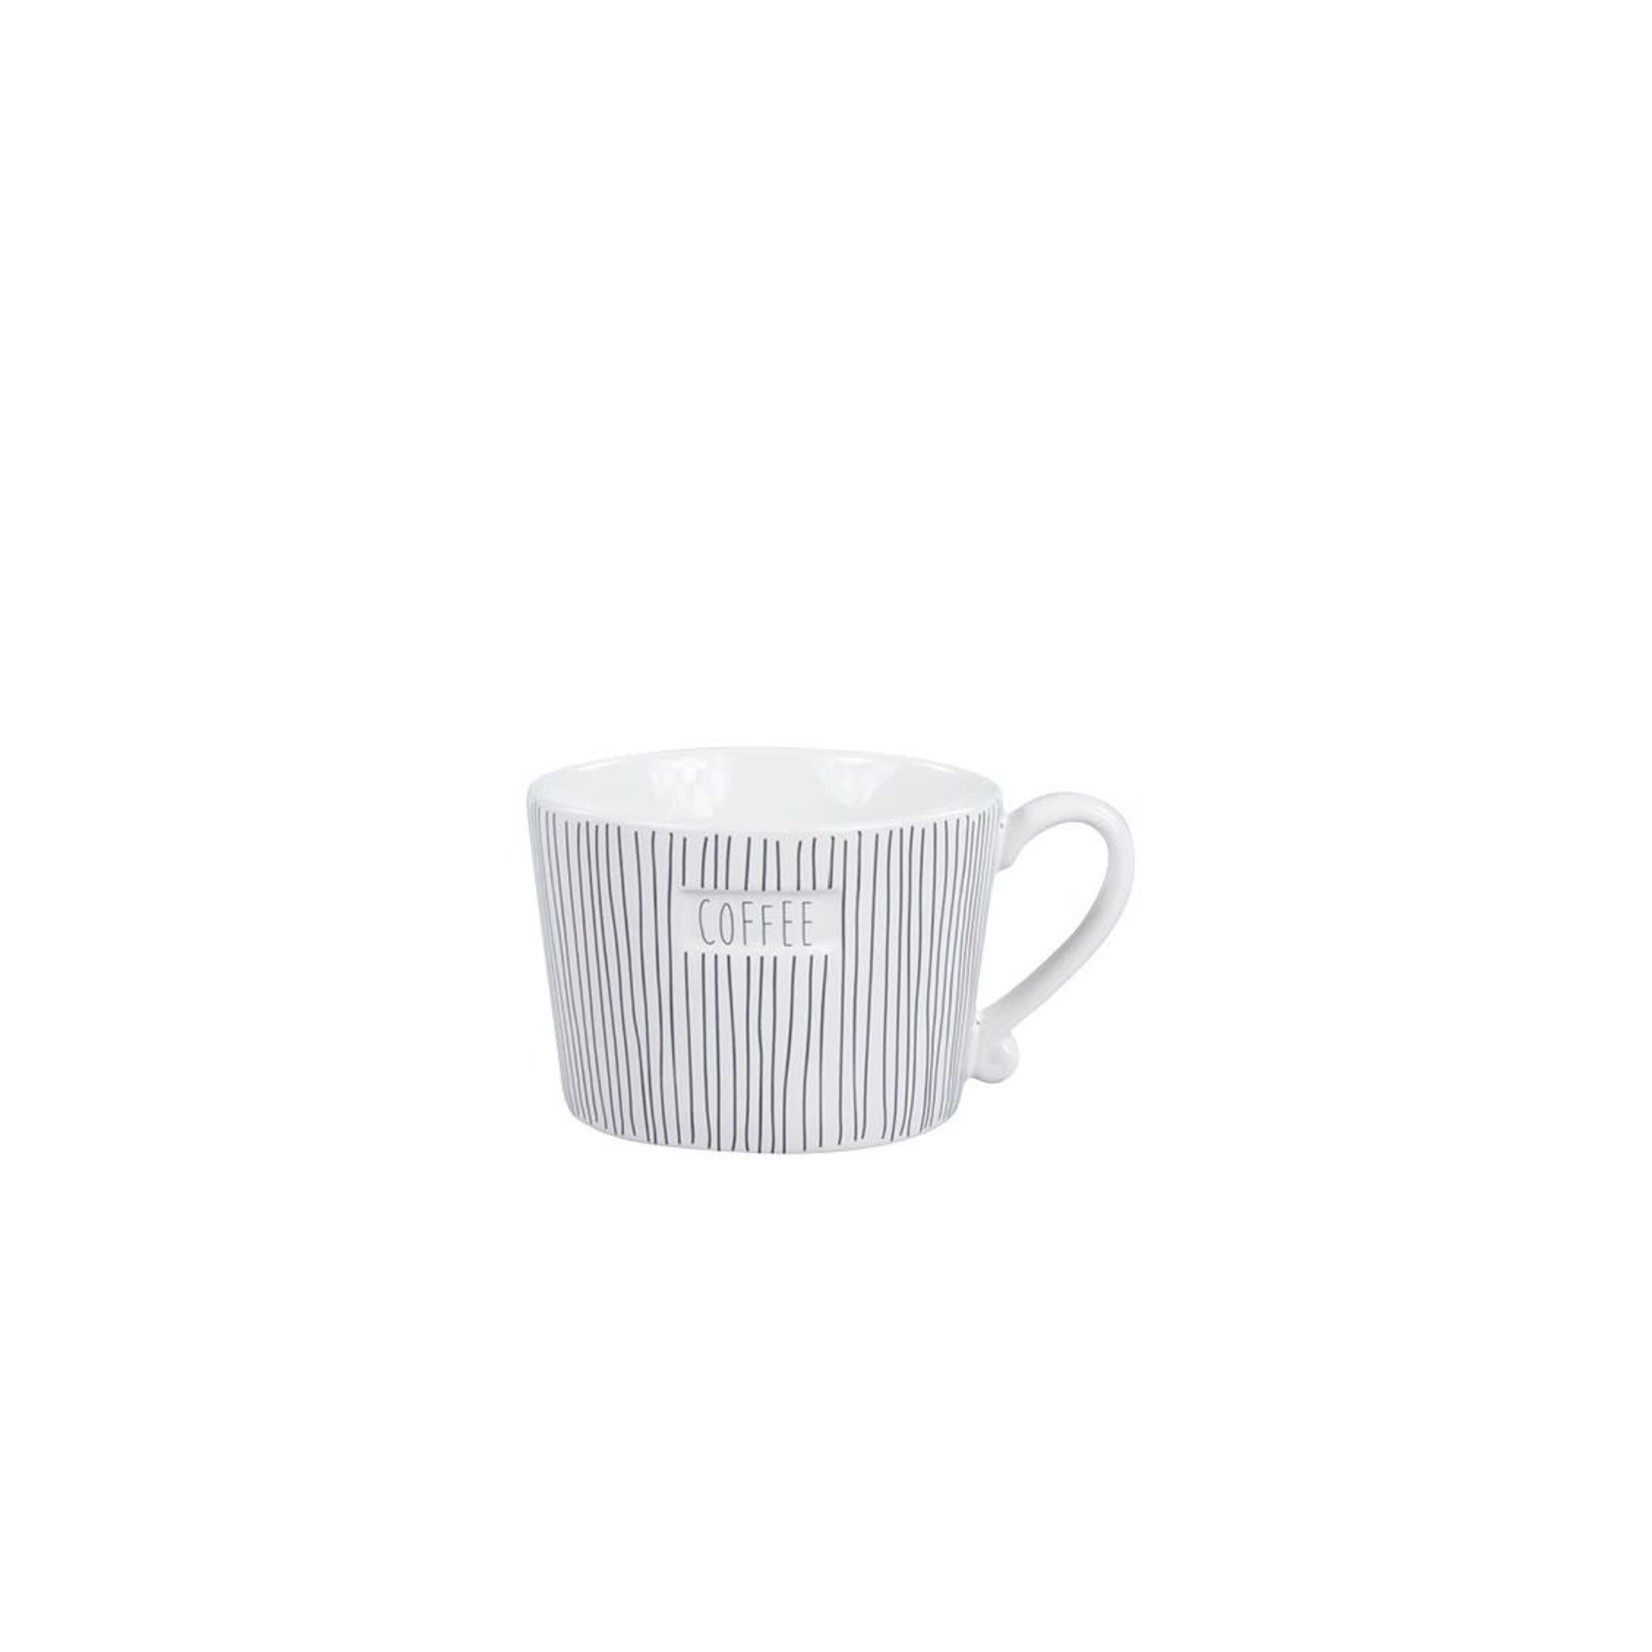 Bastion Collections Mug small White Stripes & Coffee in Grey